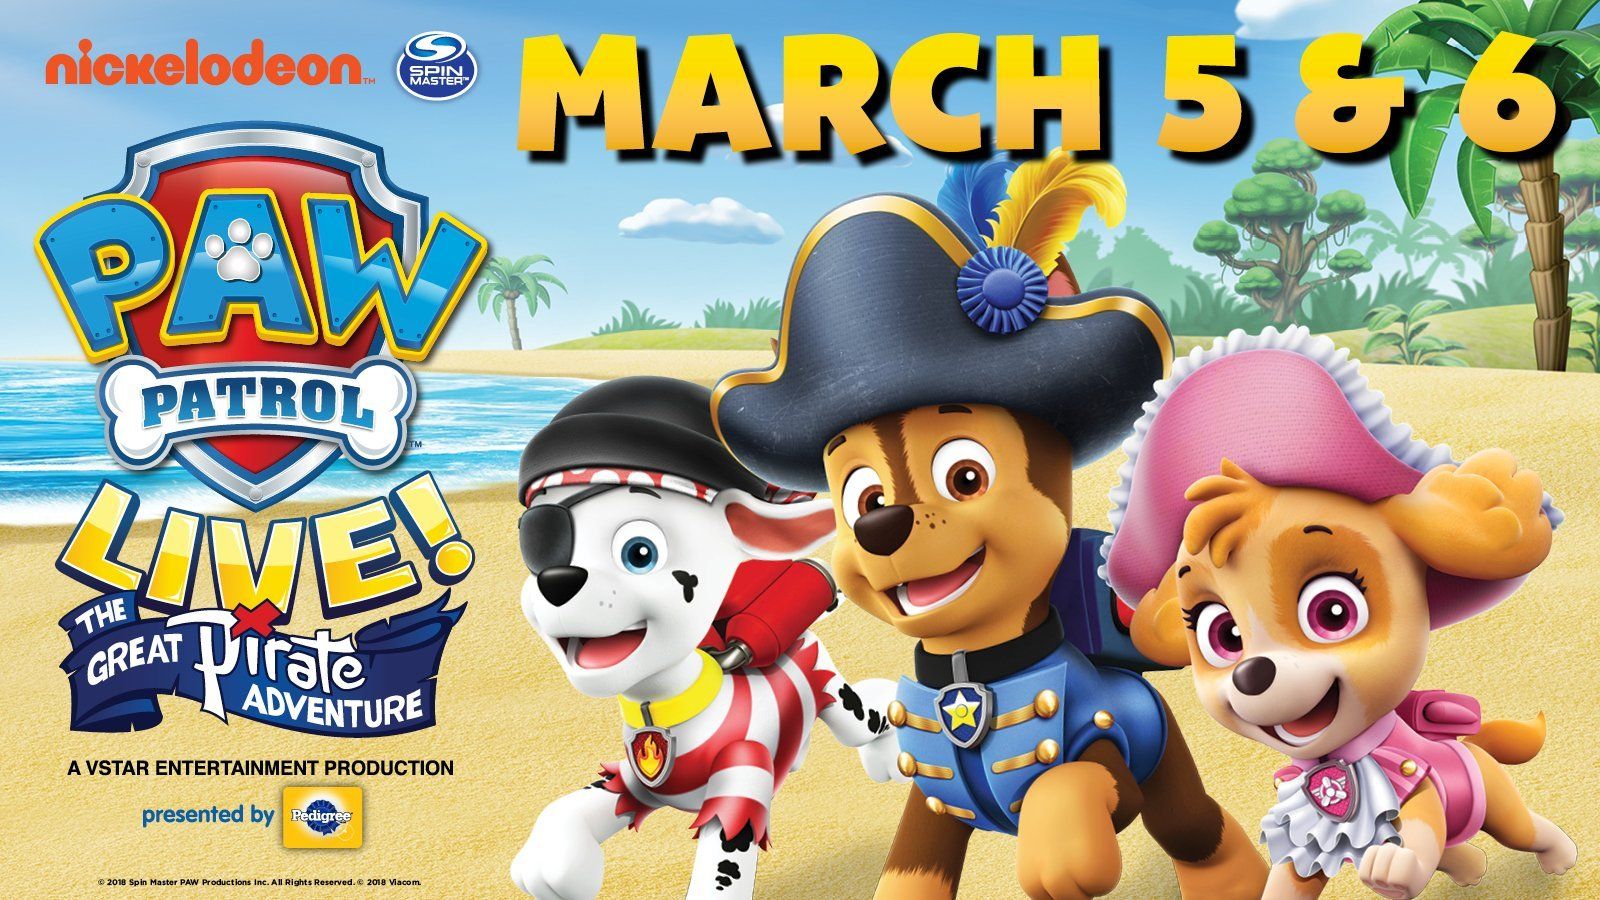 PAW Patrol Live! Sets sail for a new adventure! It's Pirate Day in Adventure Bay and Ryder will need all paws on deck as he and the PAW Patrol discover a ...